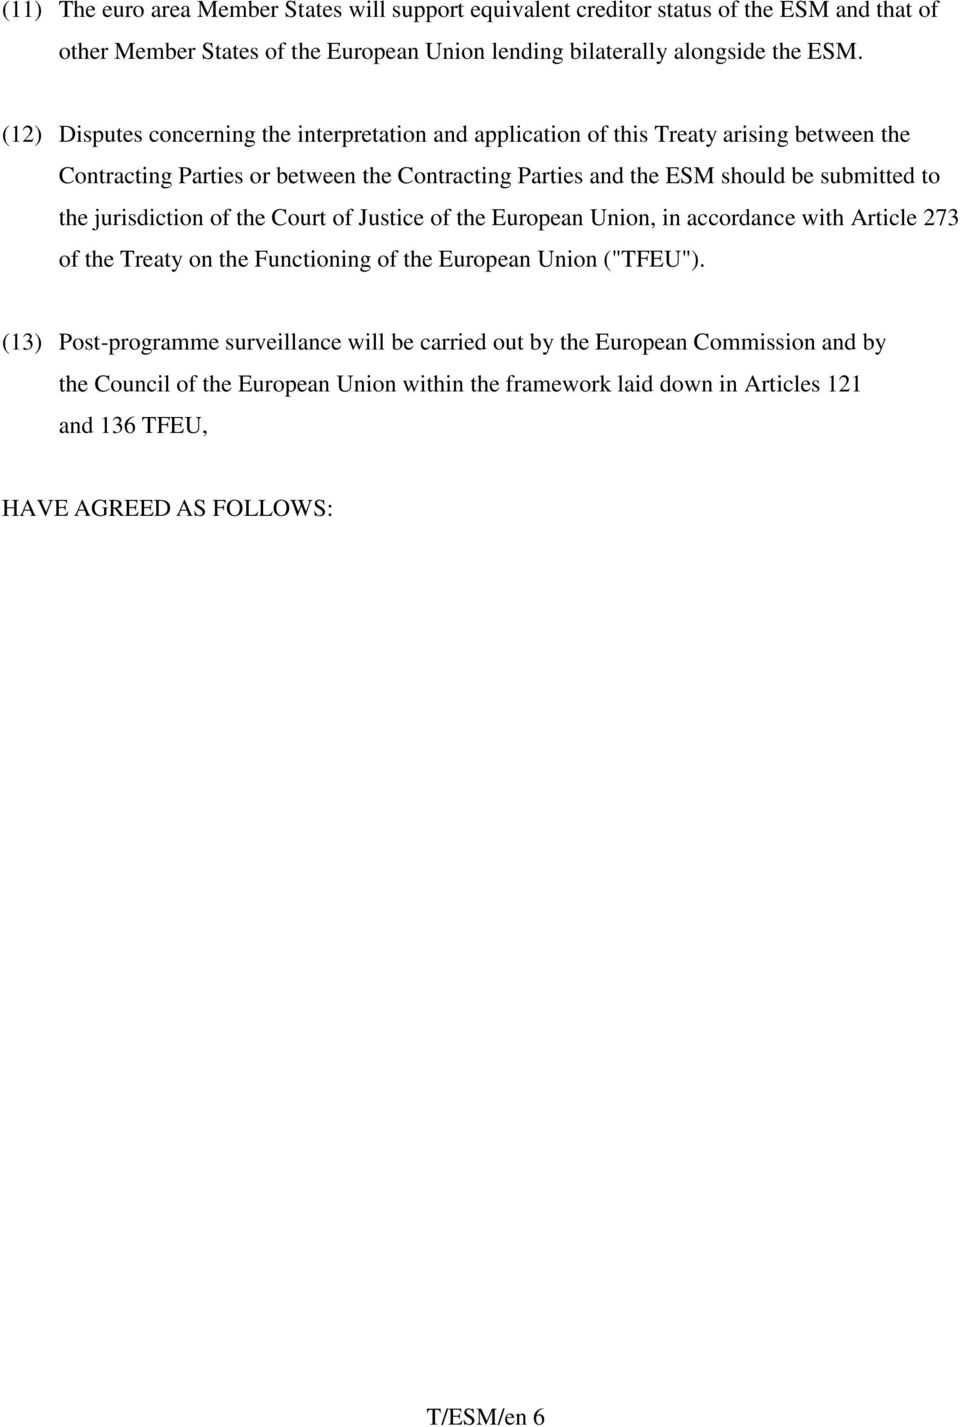 "the jurisdiction of the Court of Justice of the European Union, in accordance with Article 273 of the Treaty on the Functioning of the European Union (""TFEU"")."